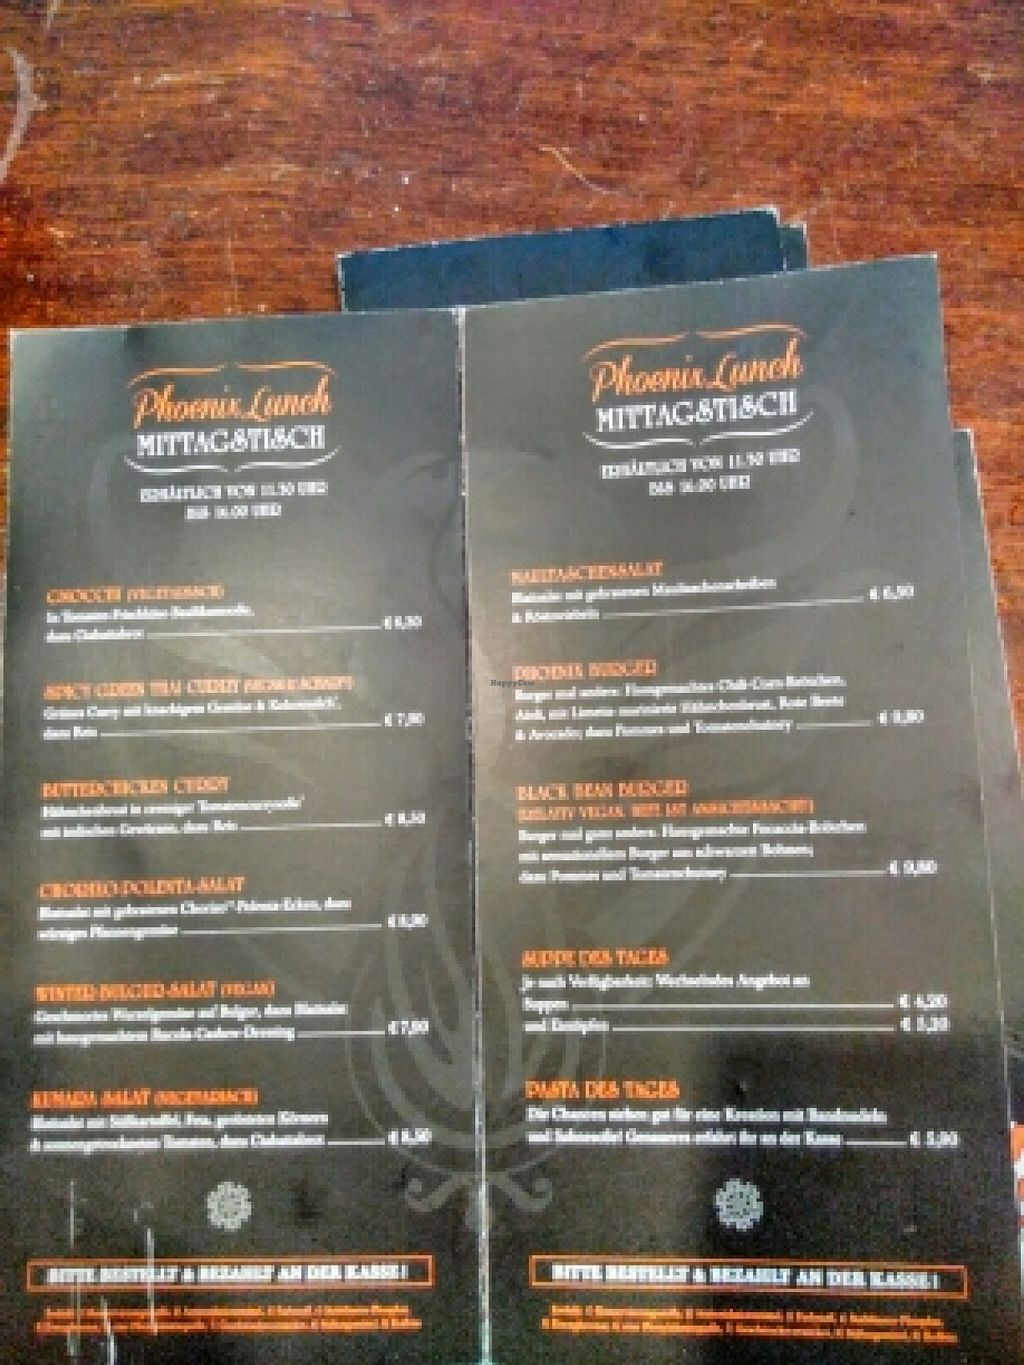 """Photo of Phoenix Coffee  by <a href=""""/members/profile/manfredwiesel"""">manfredwiesel</a> <br/>menu  <br/> March 9, 2016  - <a href='/contact/abuse/image/50533/139381'>Report</a>"""